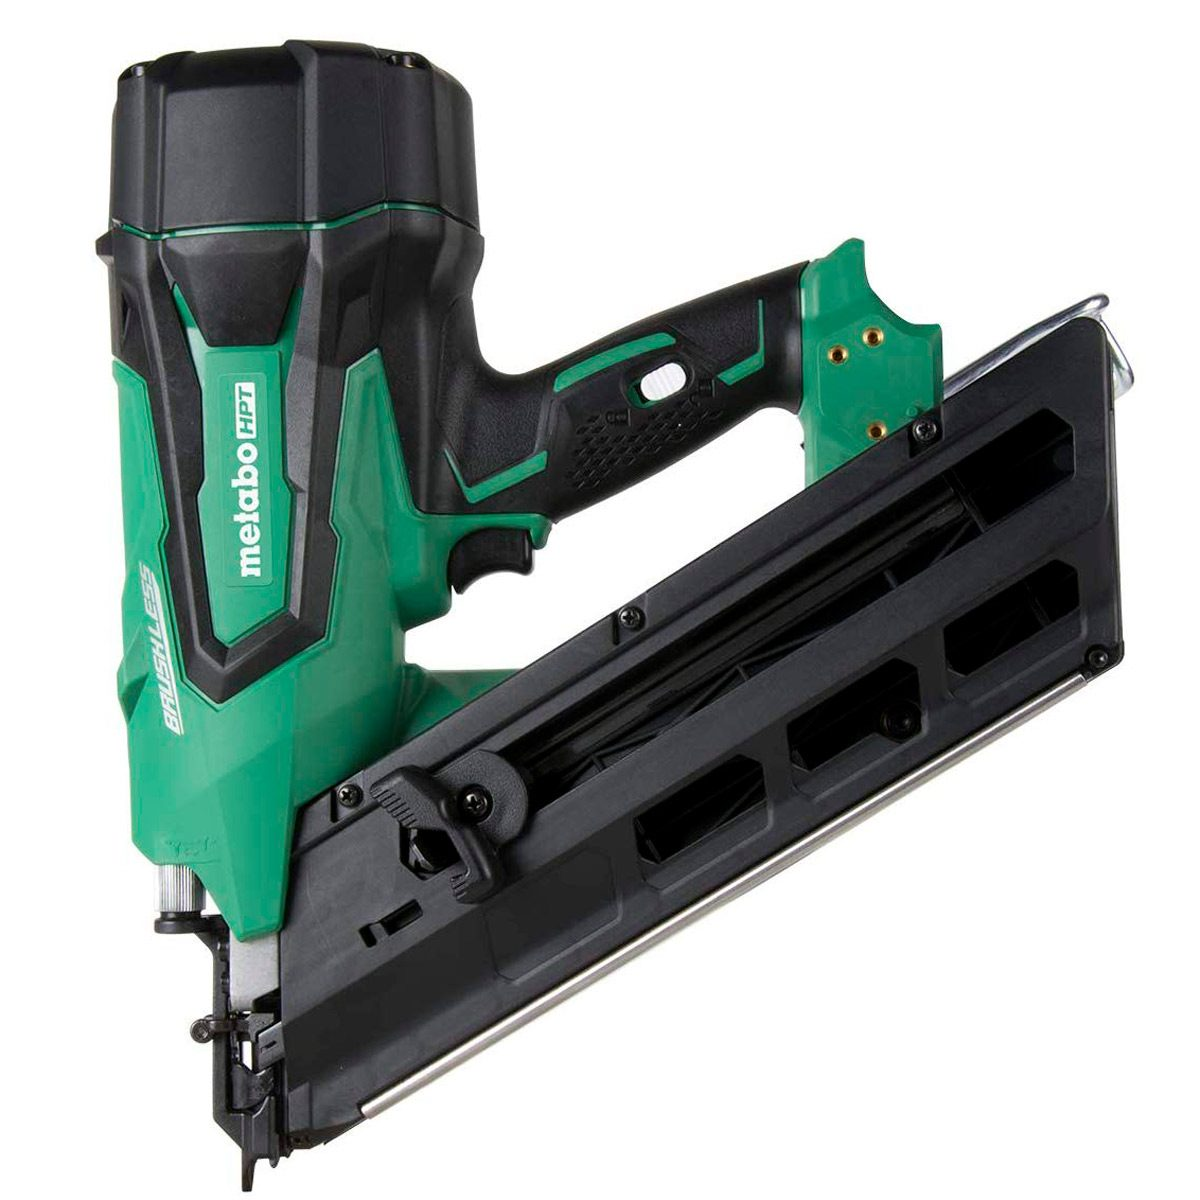 HitachiMetabo-Cordless-Framing-Nailer